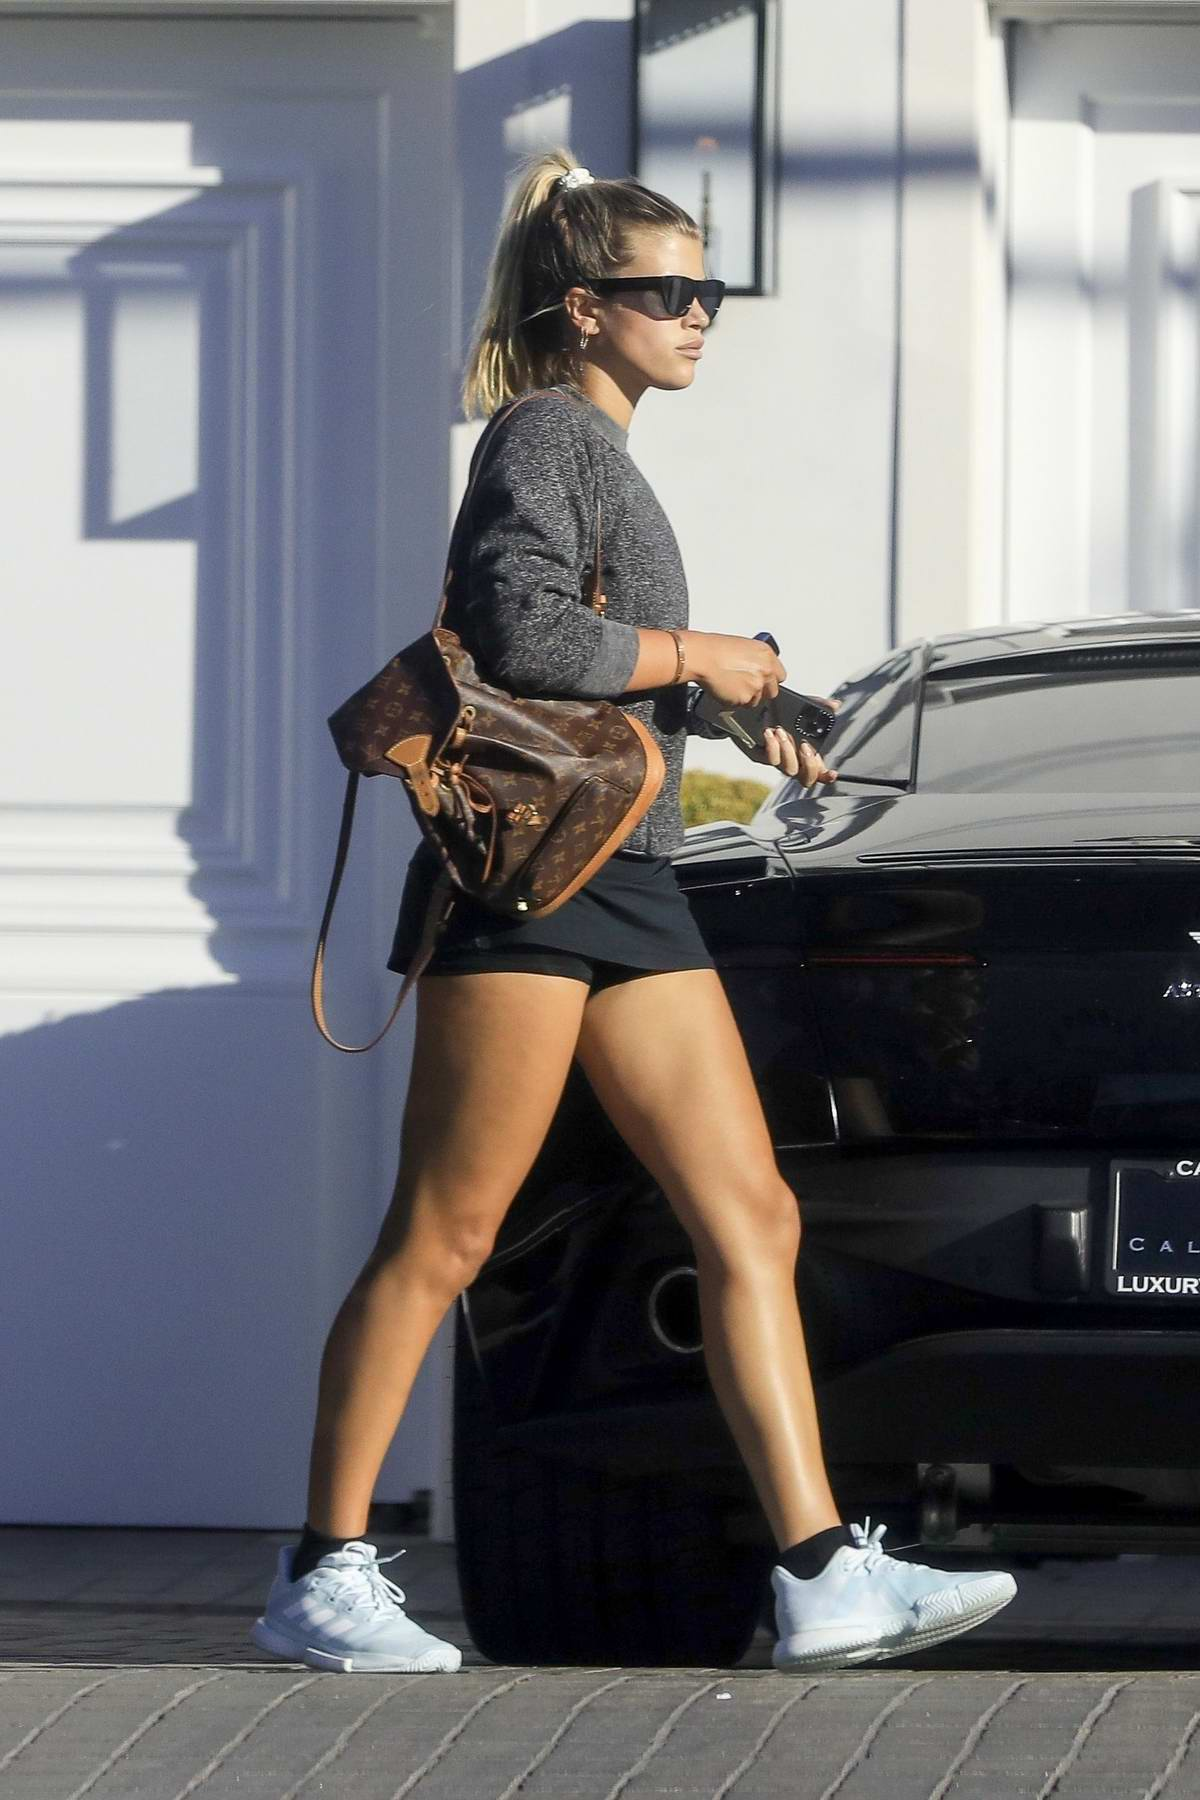 Sofia Richie shows some legs after a tennis session while stopping by a friend's house in Malibu, California